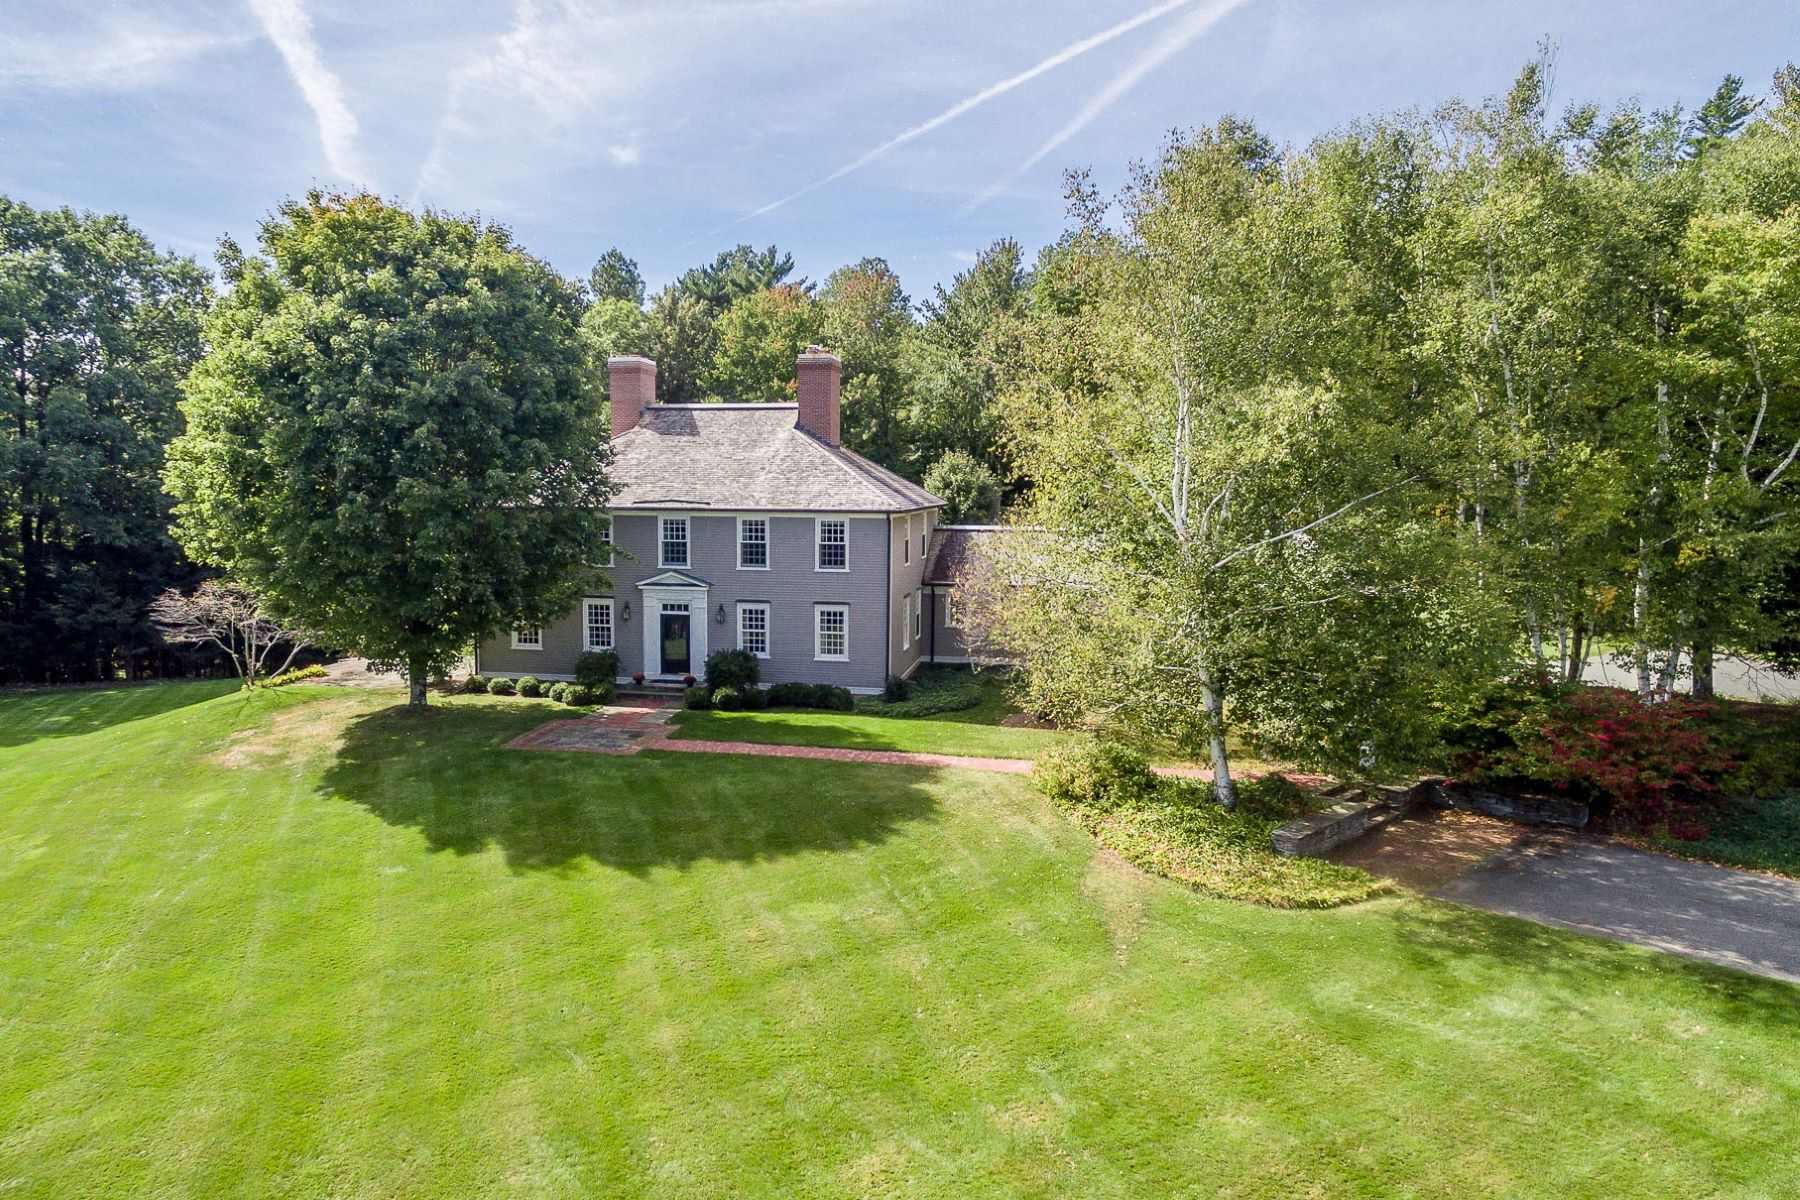 Villa per Vendita alle ore 2 Parade Ground, Hanover Hanover, New Hampshire, 03755 Stati Uniti